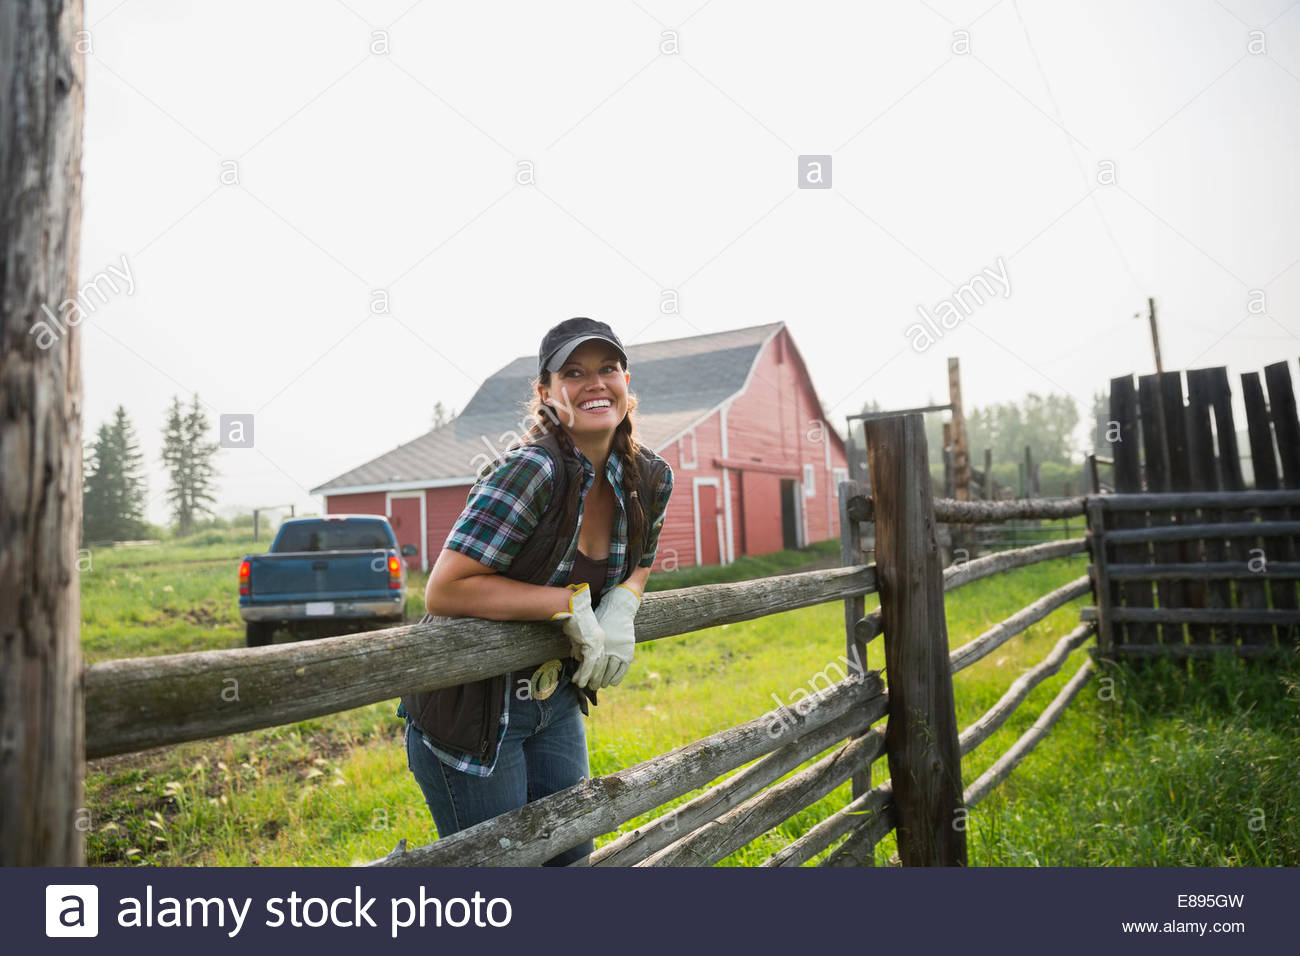 Smiling rancher leaning on pasture fence - Stock Image